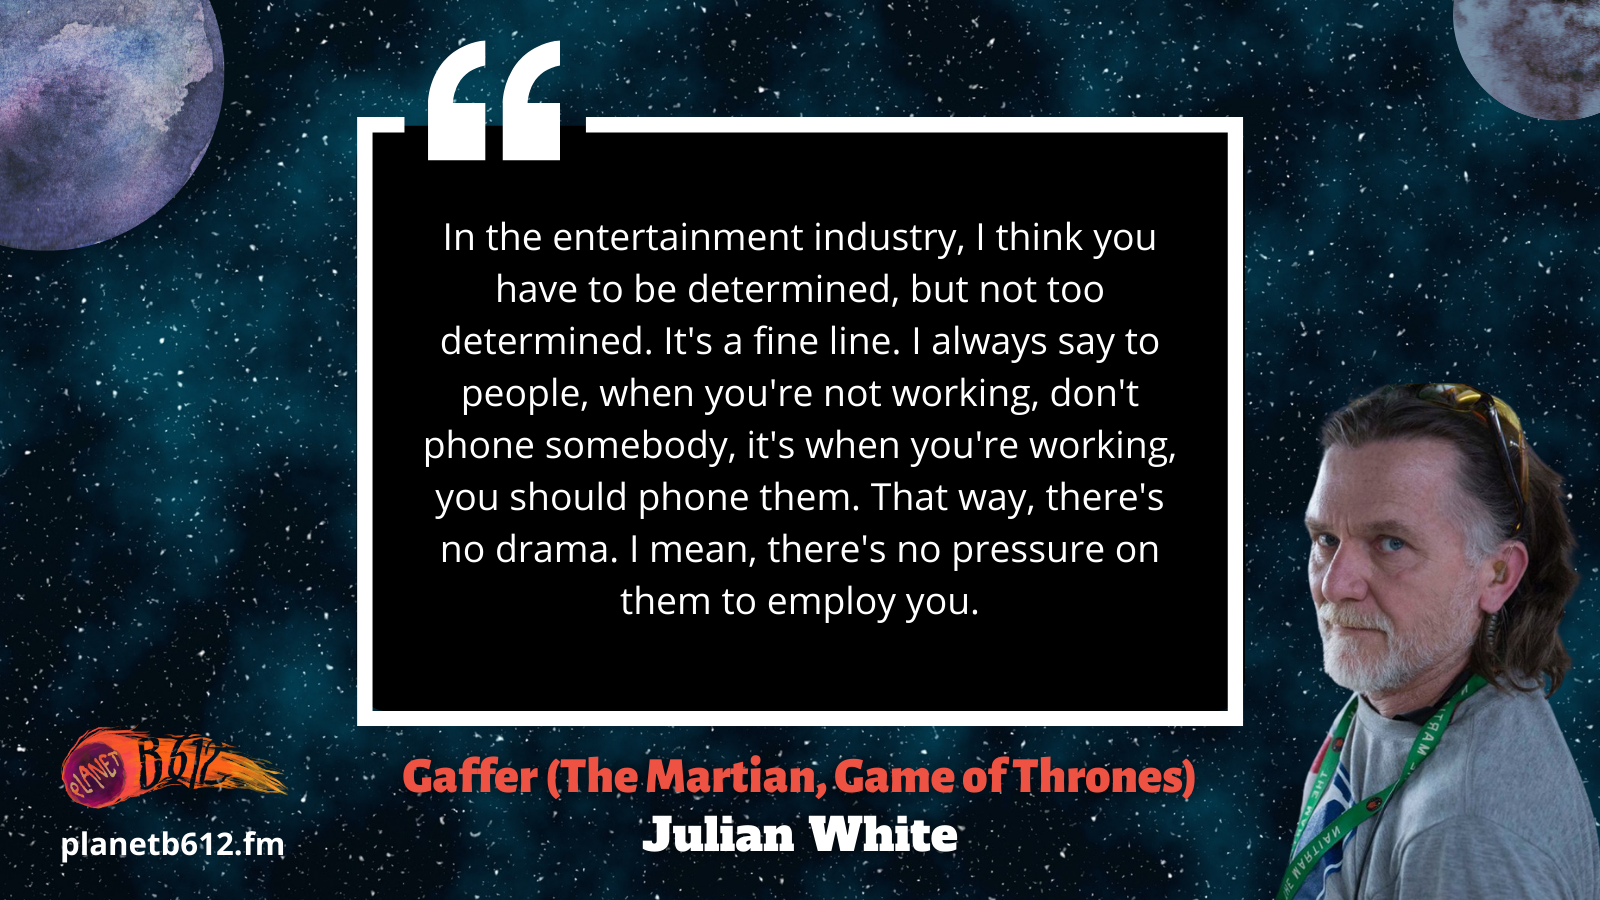 Julian White tells us that in the entertainment industry, you have to be determined.